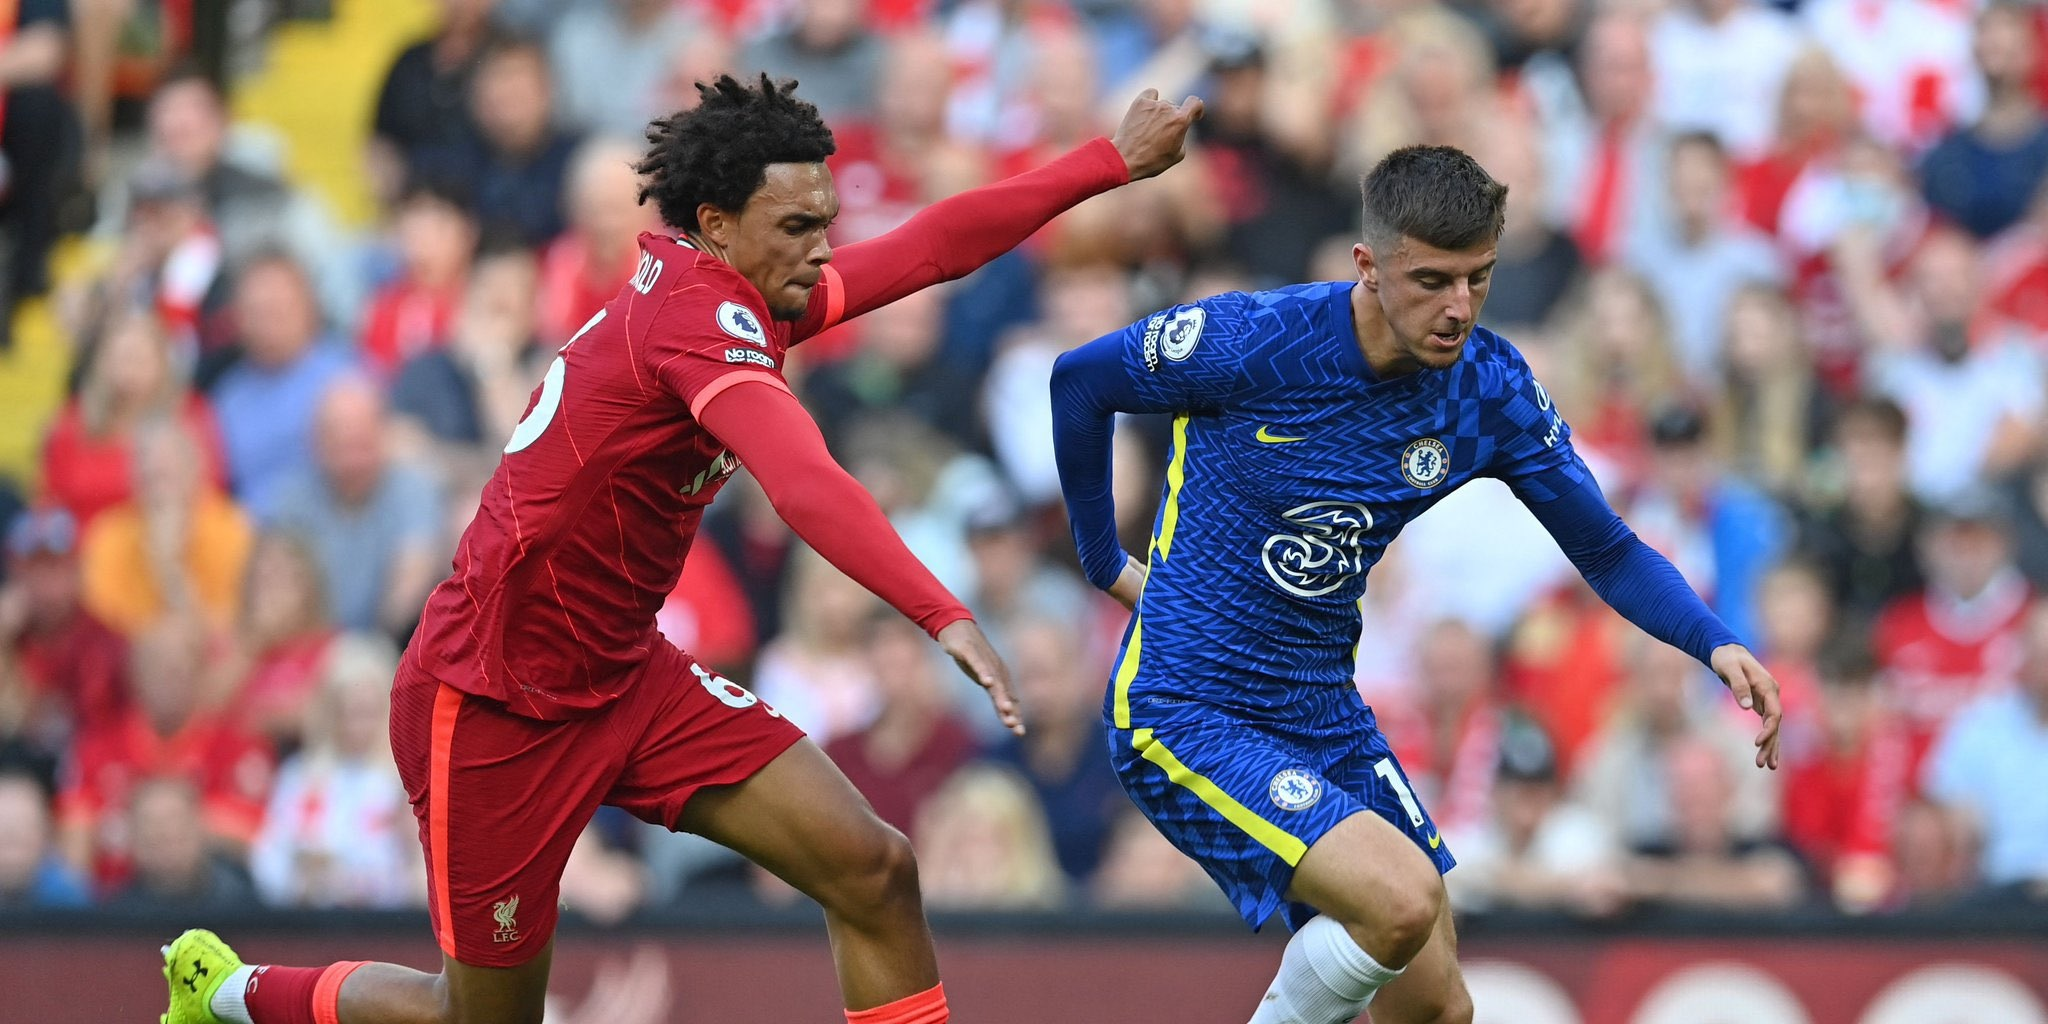 Lineker tips 'best passer in English football' for positional change at Liverpool